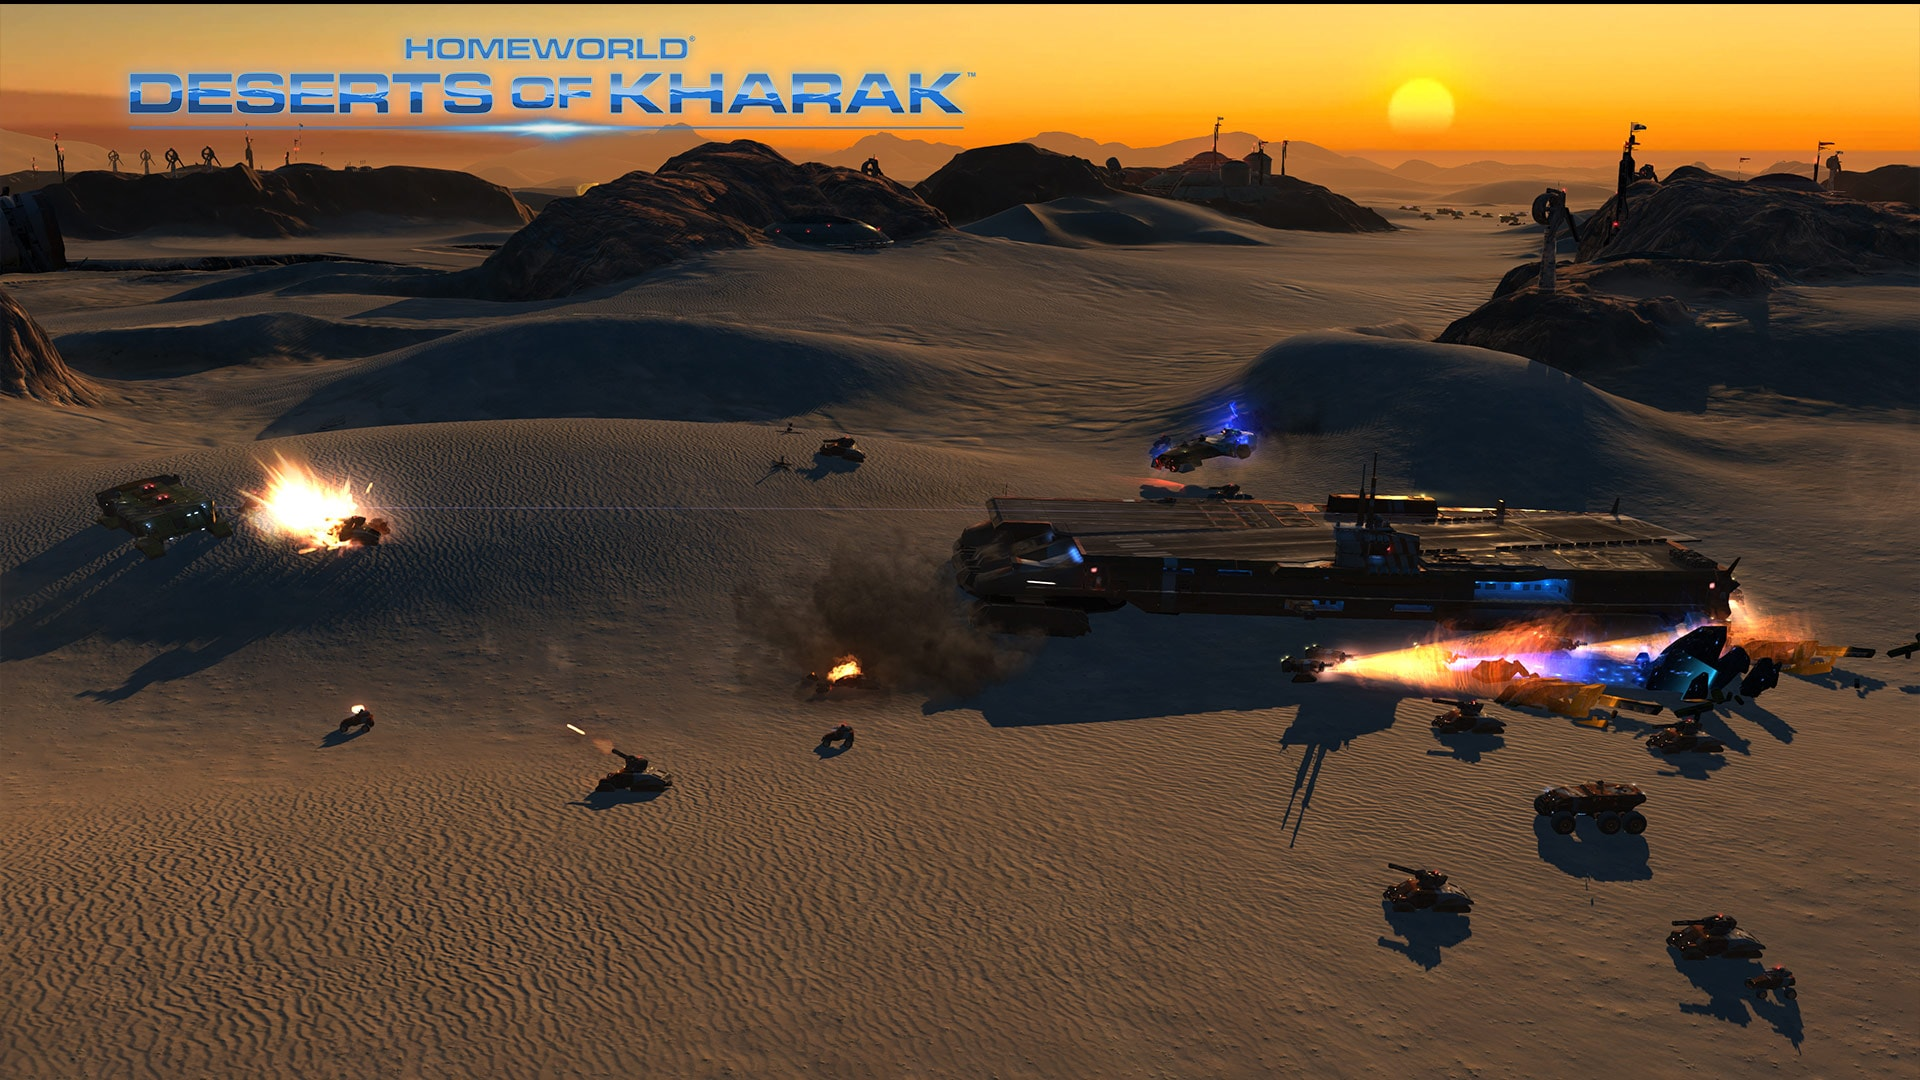 Homeworld: Deserts of Kharak Free